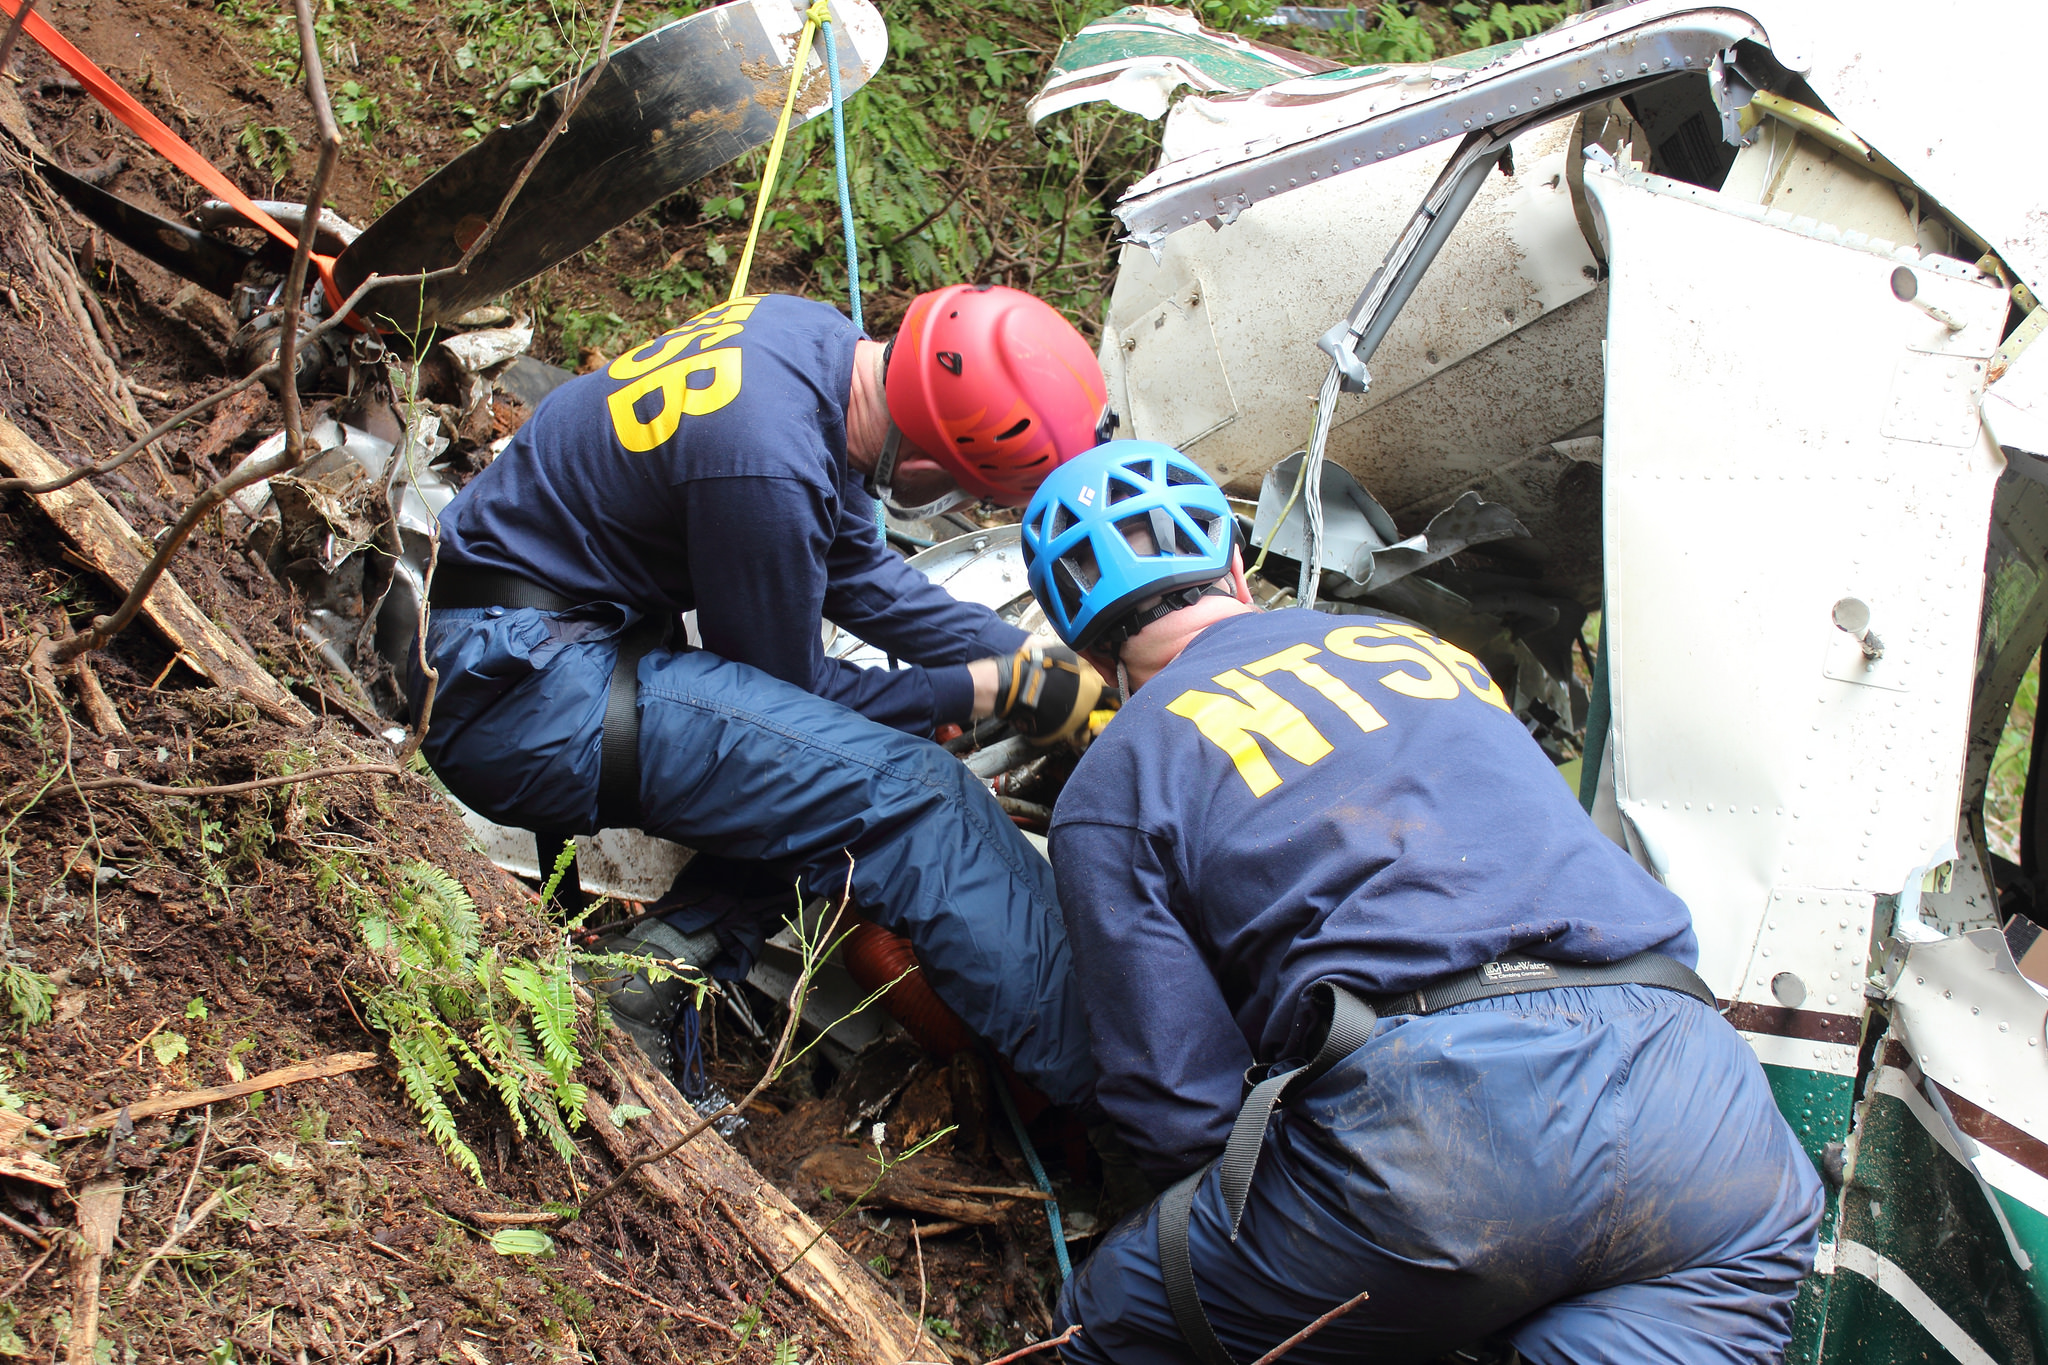 NTSB investigators Brice Banning and Clint Crookshanks on scene near Ketchikan examining the wreckage of a sightseeing plane that crashed in Alaska on June 25, 2015. This is not one of the crashes in the series. (Creative Commons photo by National Transportation Safety Board)